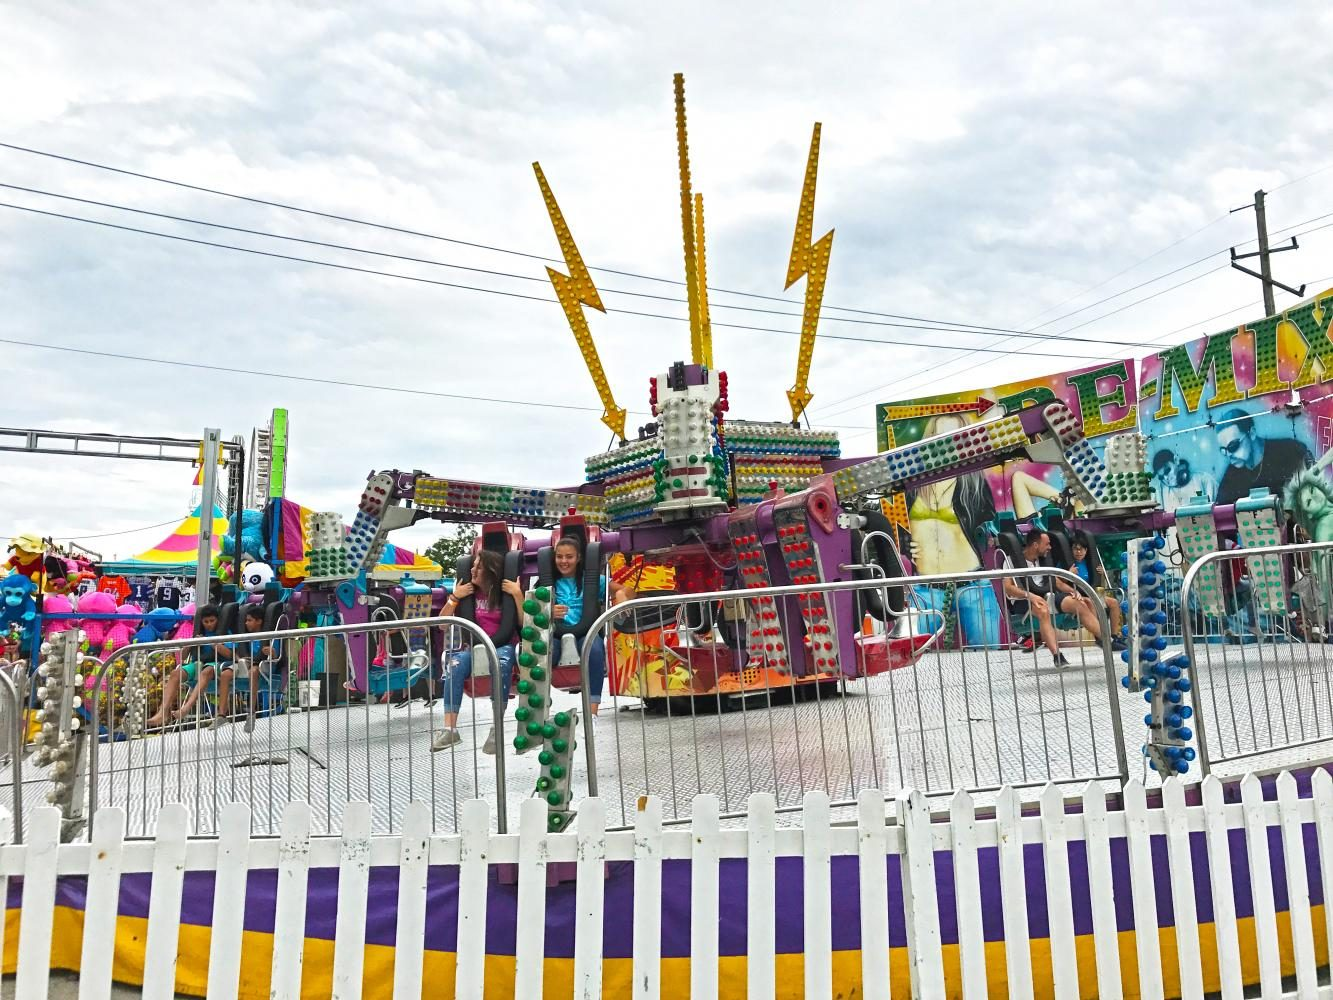 The remix, a ride at the Indiana State Fair. The fair will last from Aug. 4 to Aug. 20.